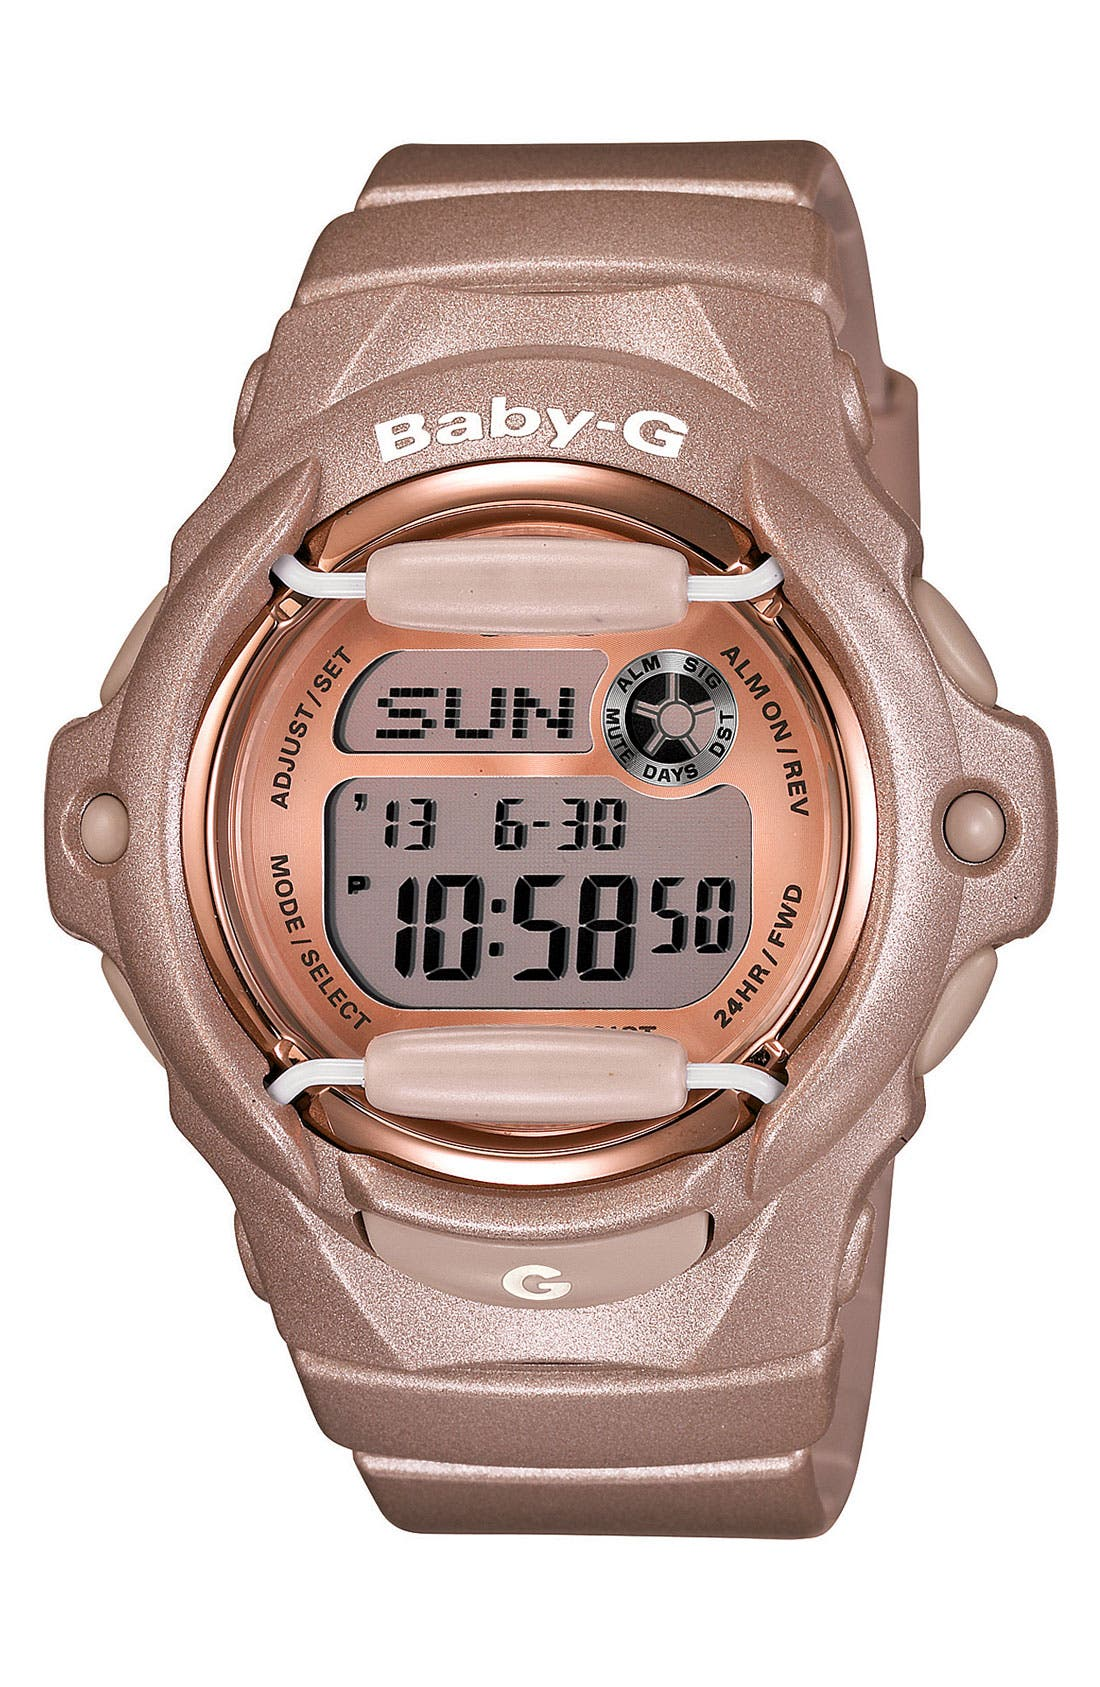 Baby-G Pink Dial Digital Watch, 46mm x 42mm,                         Main,                         color, CHAMPAGNE PINK